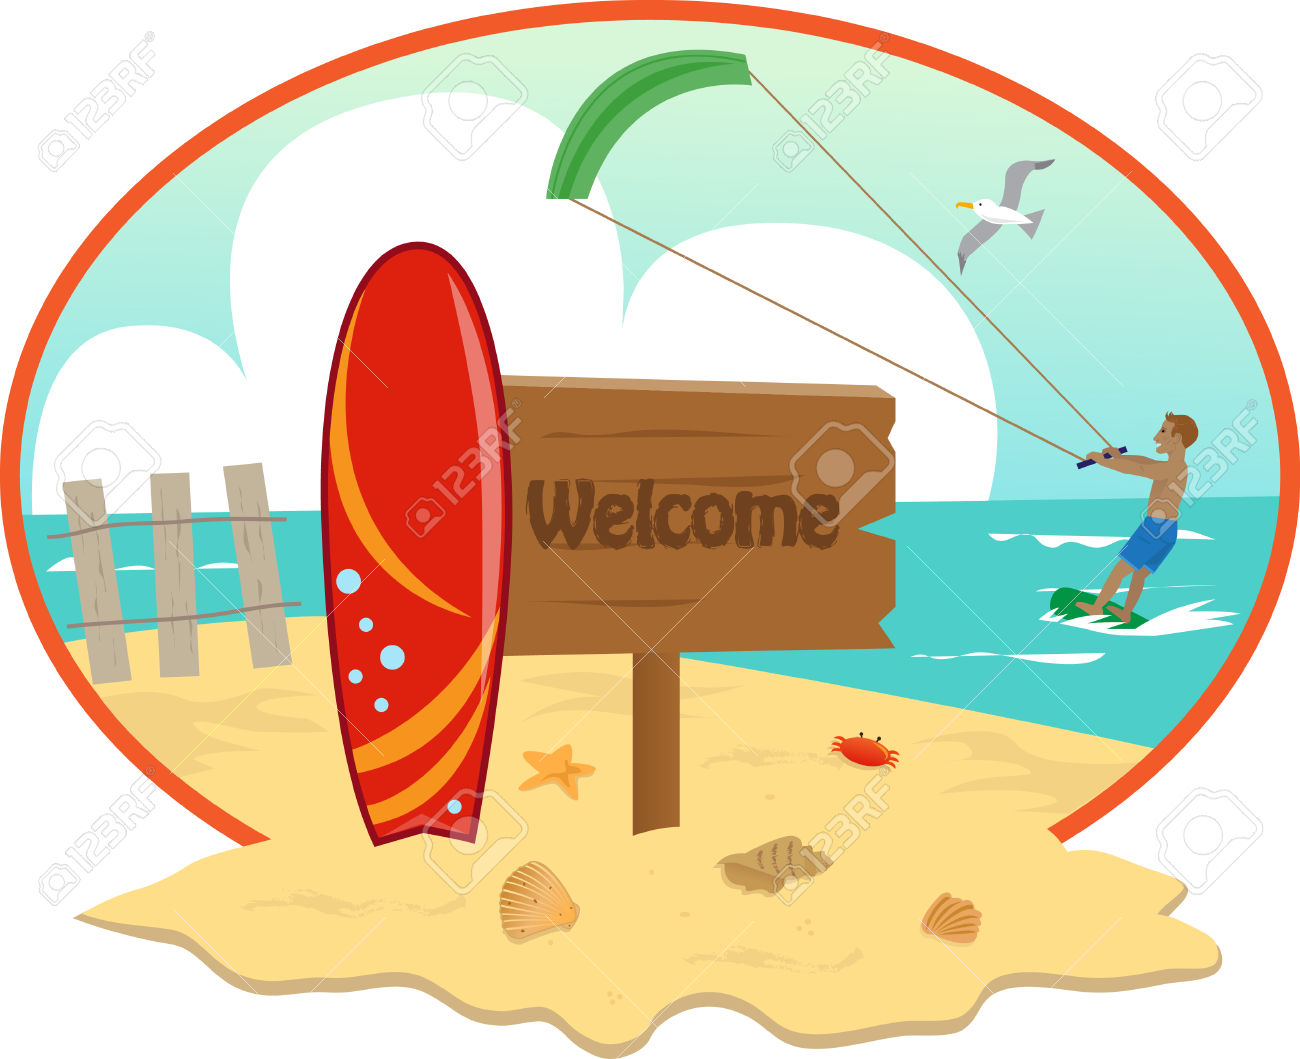 Surfboard signs background clipart clip freeuse Beach - Beach Icon With Welcome Sign And Surfboard In The Front ... clip freeuse